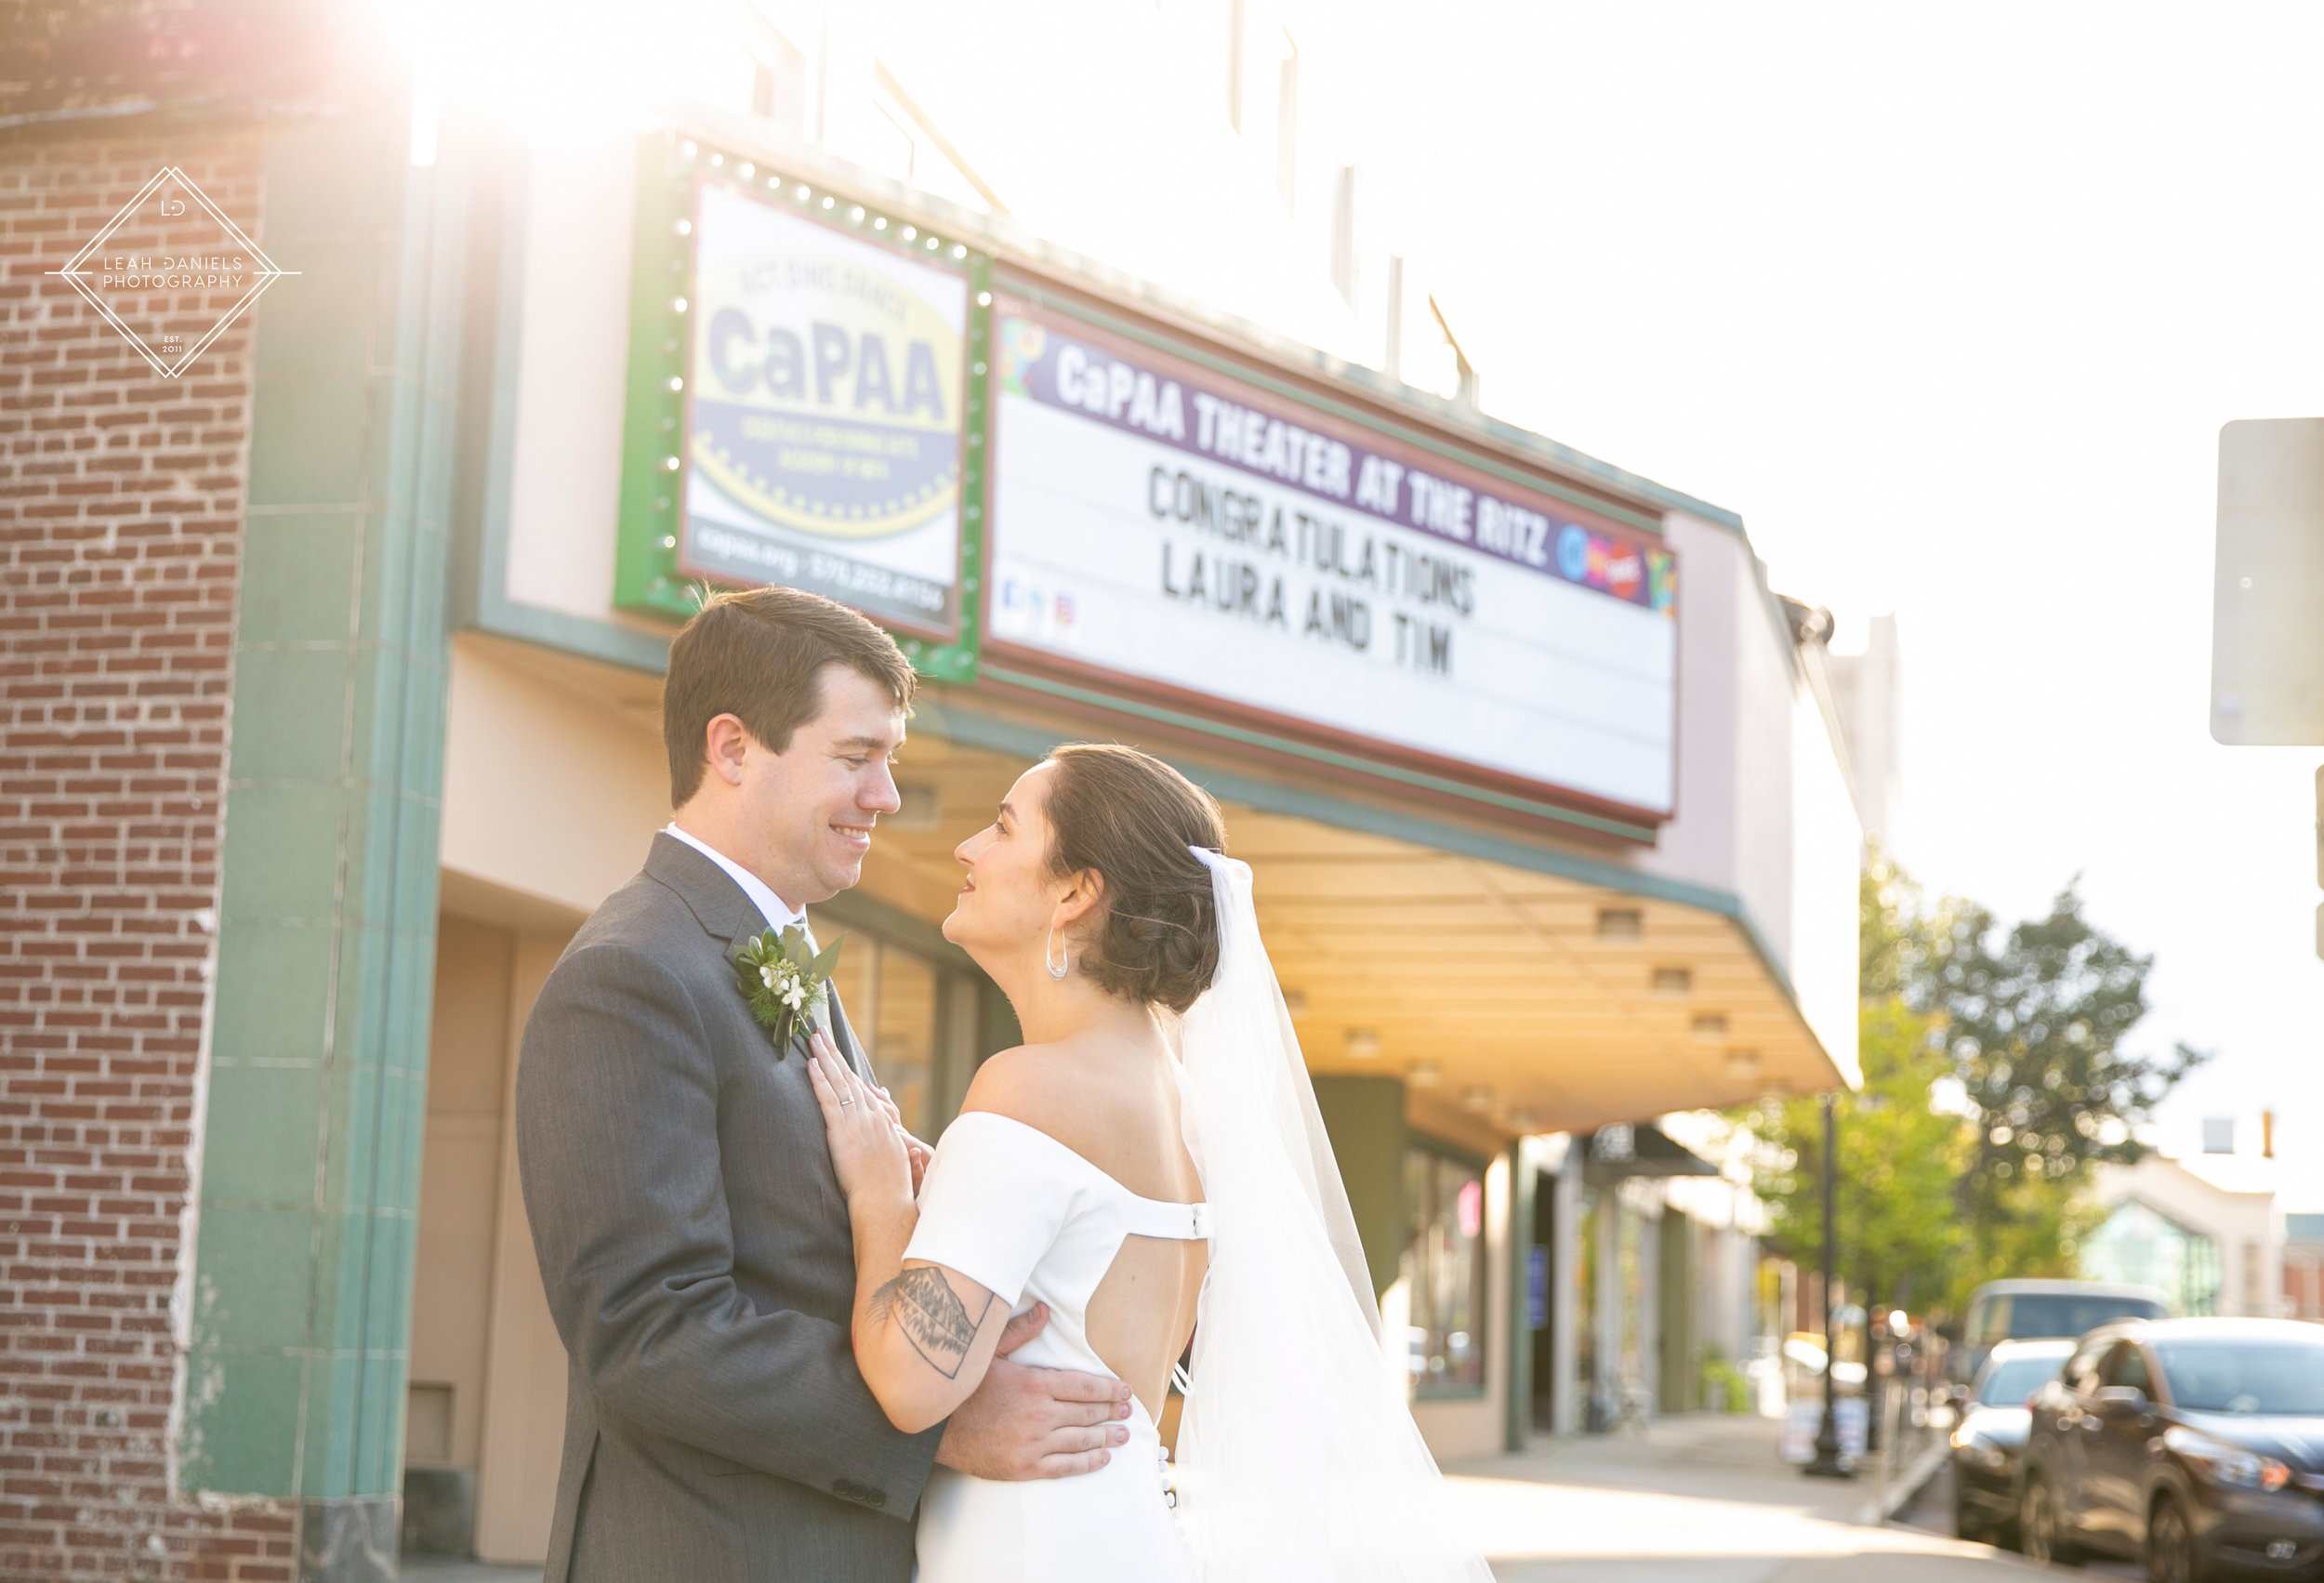 Scranton Wedding Photographers - The Ritz theater